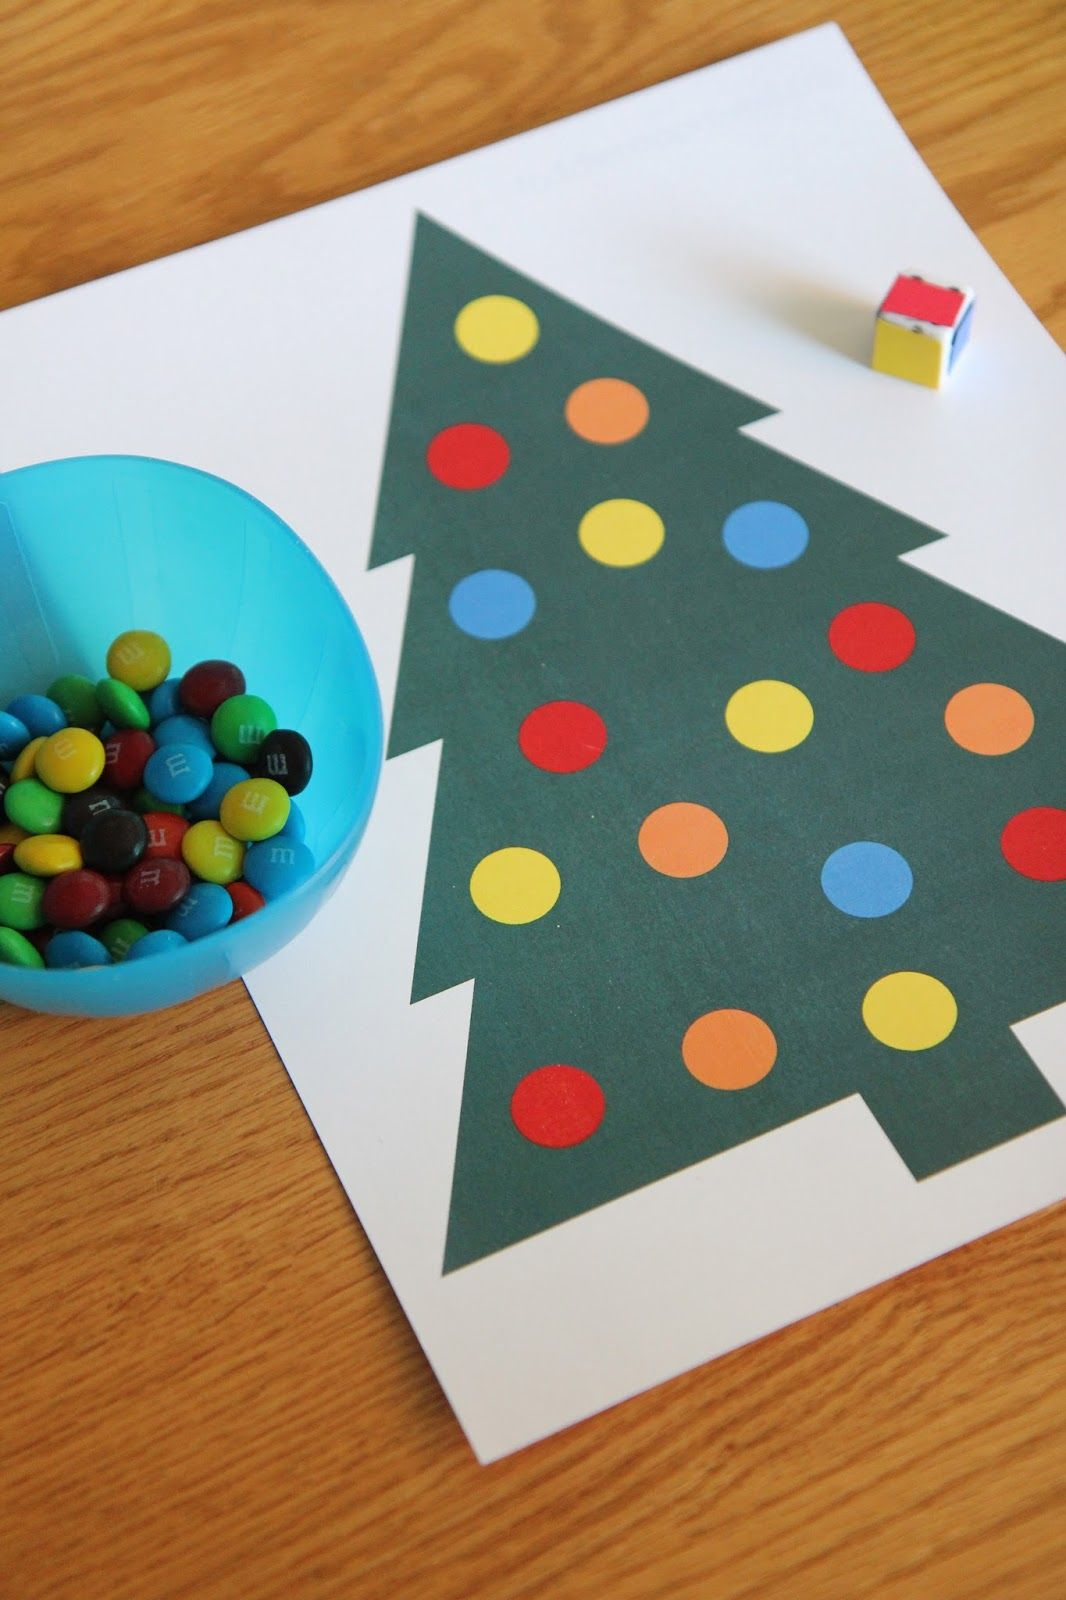 Roll A Christmas Tree Color Game Toddler Approved Christmas Tree Game Toddler Christmas Christmas Tree Coloring Page